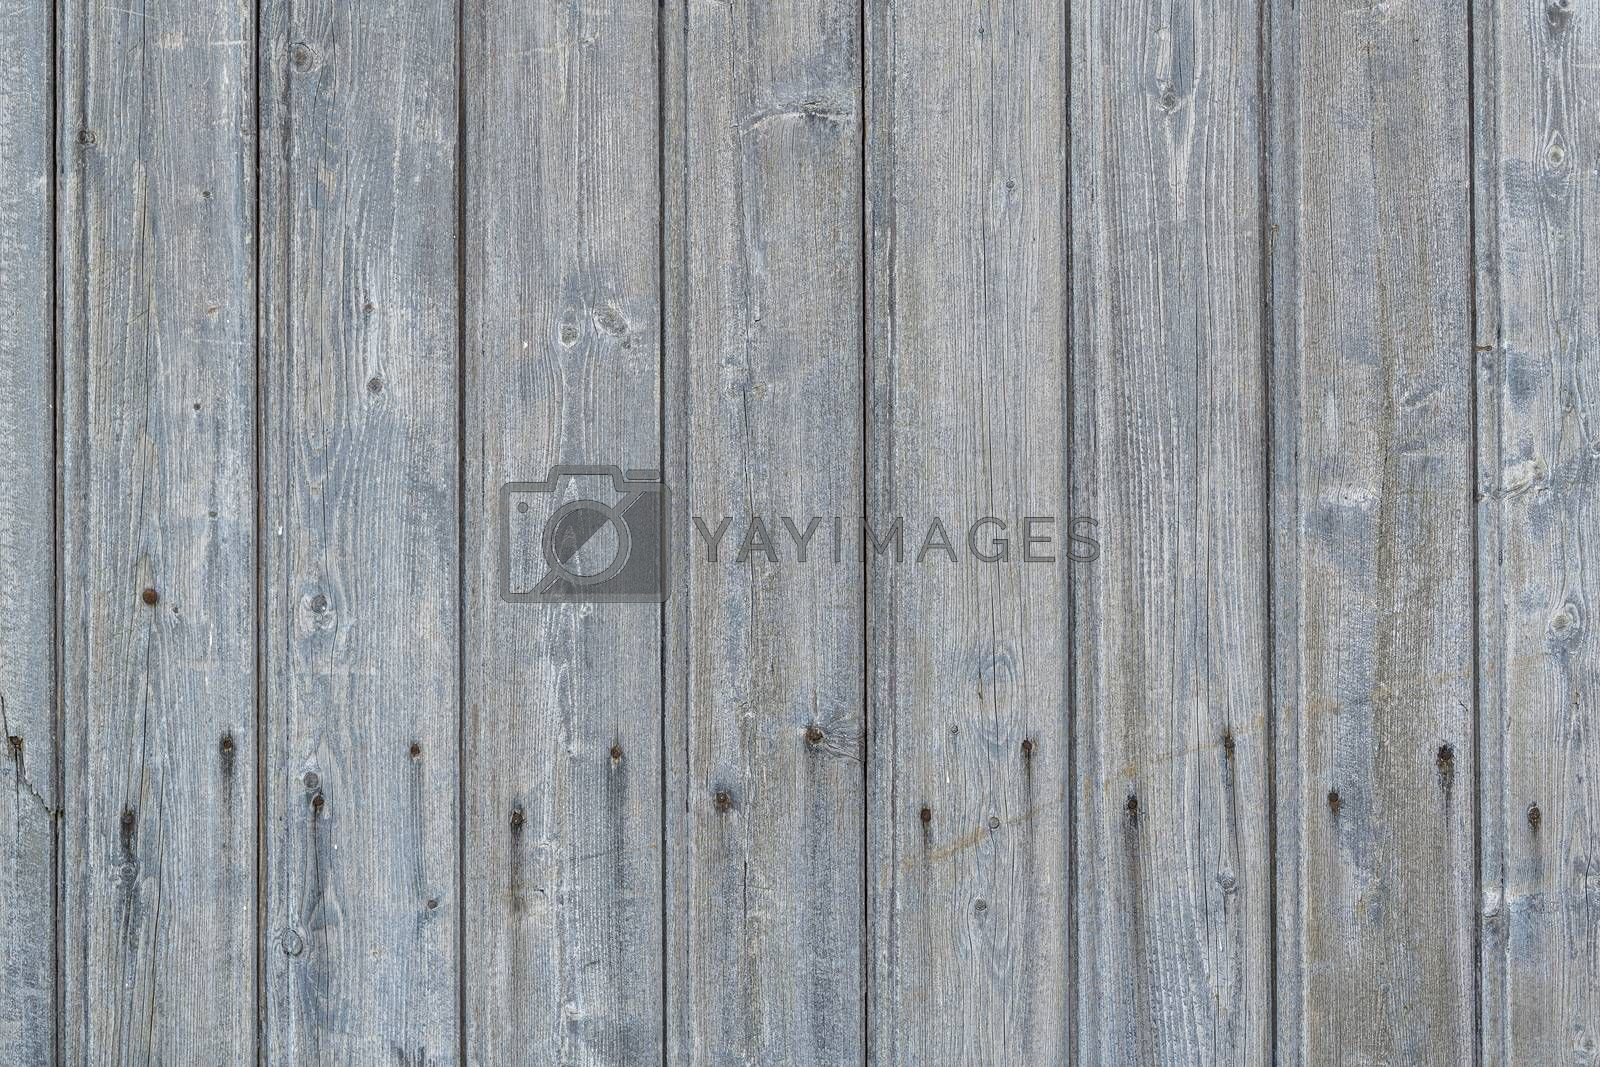 Background photo of weathered old gray wooden scrap with rusted nails shown full screen